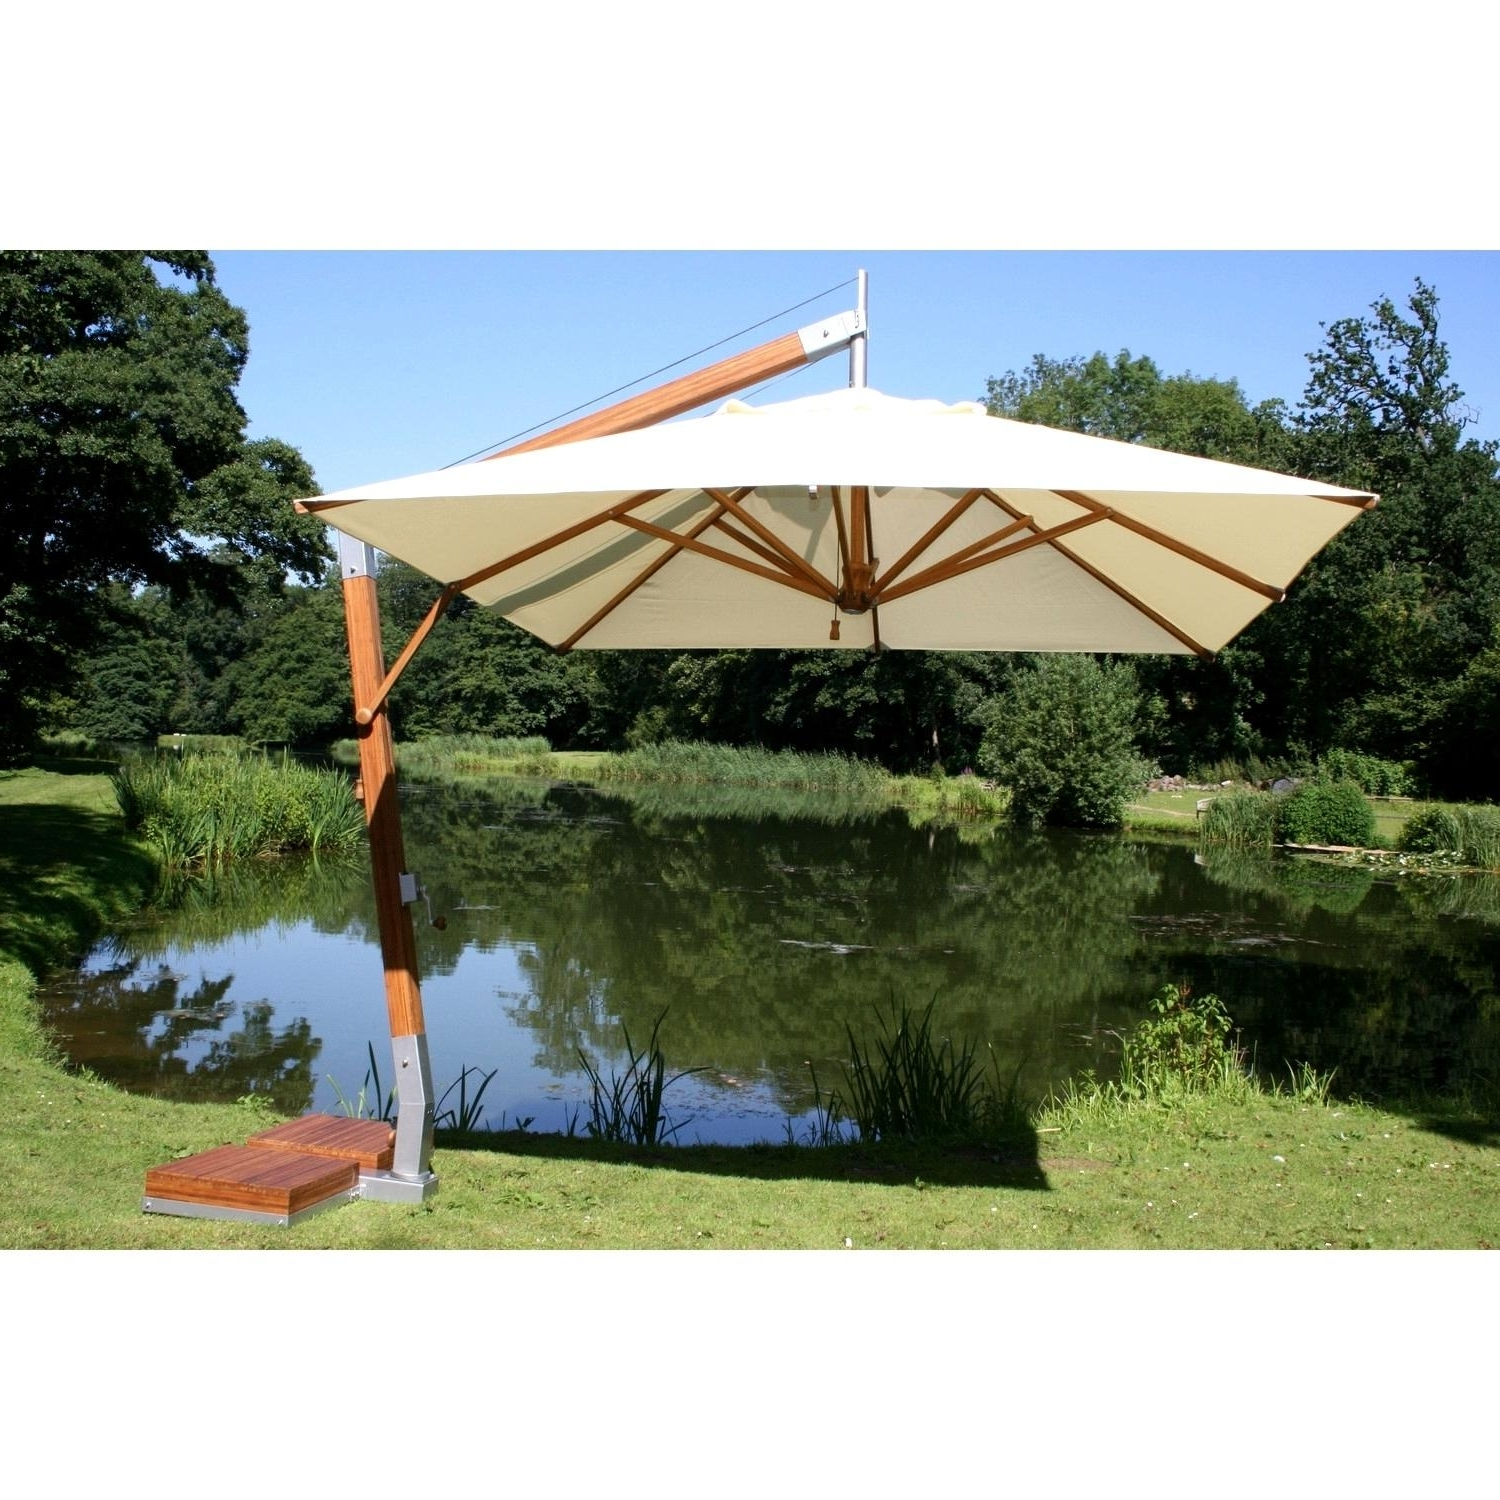 Rectangular Offset Patio Umbrellas Pertaining To 2019 Awesome Bamboo  Cantilever Umbrella Patio Umbrellas Set Umbrella (